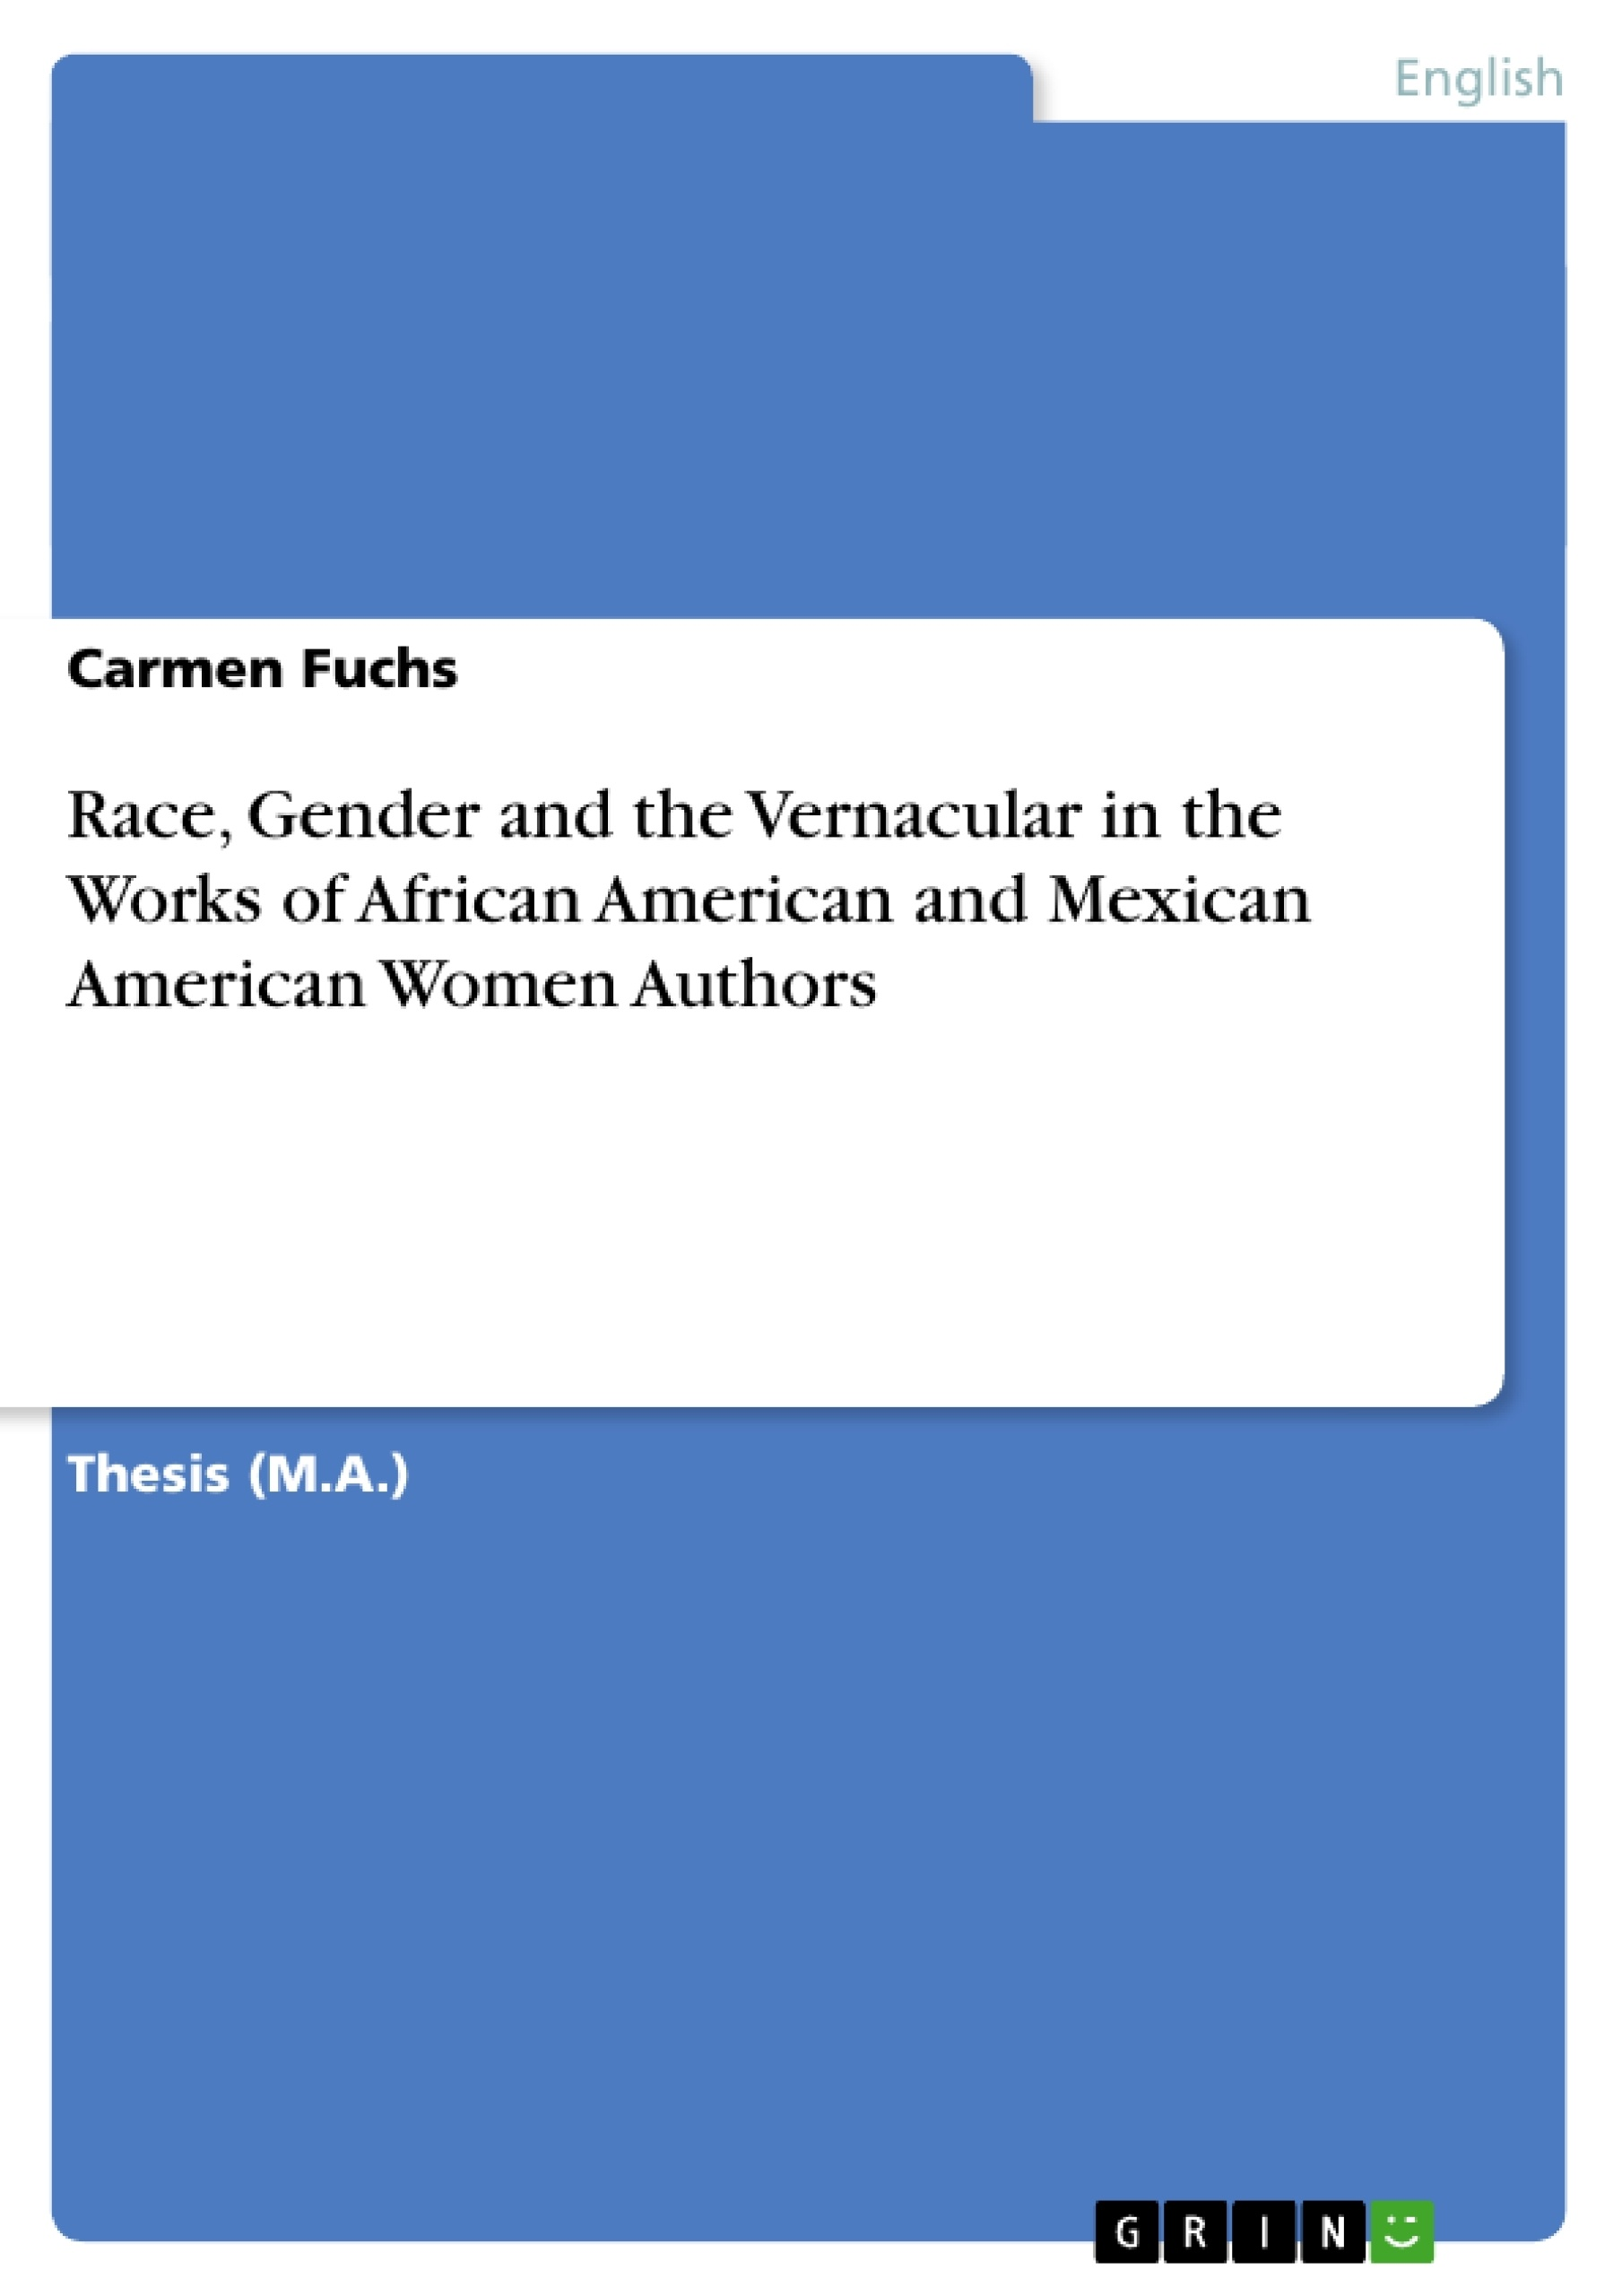 I want to examine Mexican-American culture in the borderland from an anthropological perspective...?